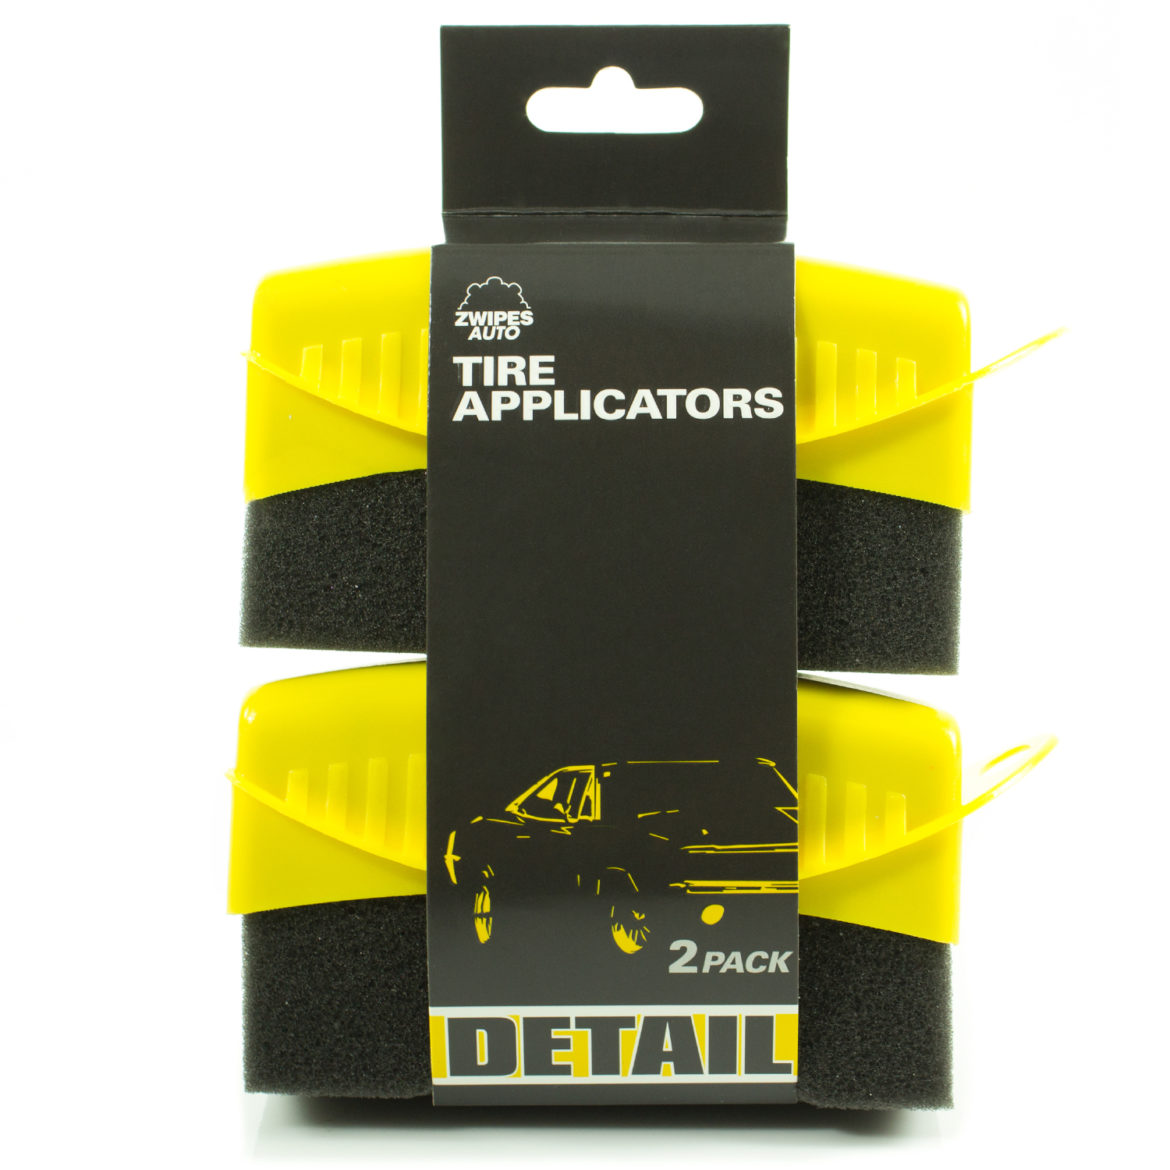 Tire Applicators, 2-Pack - Zwipes Auto